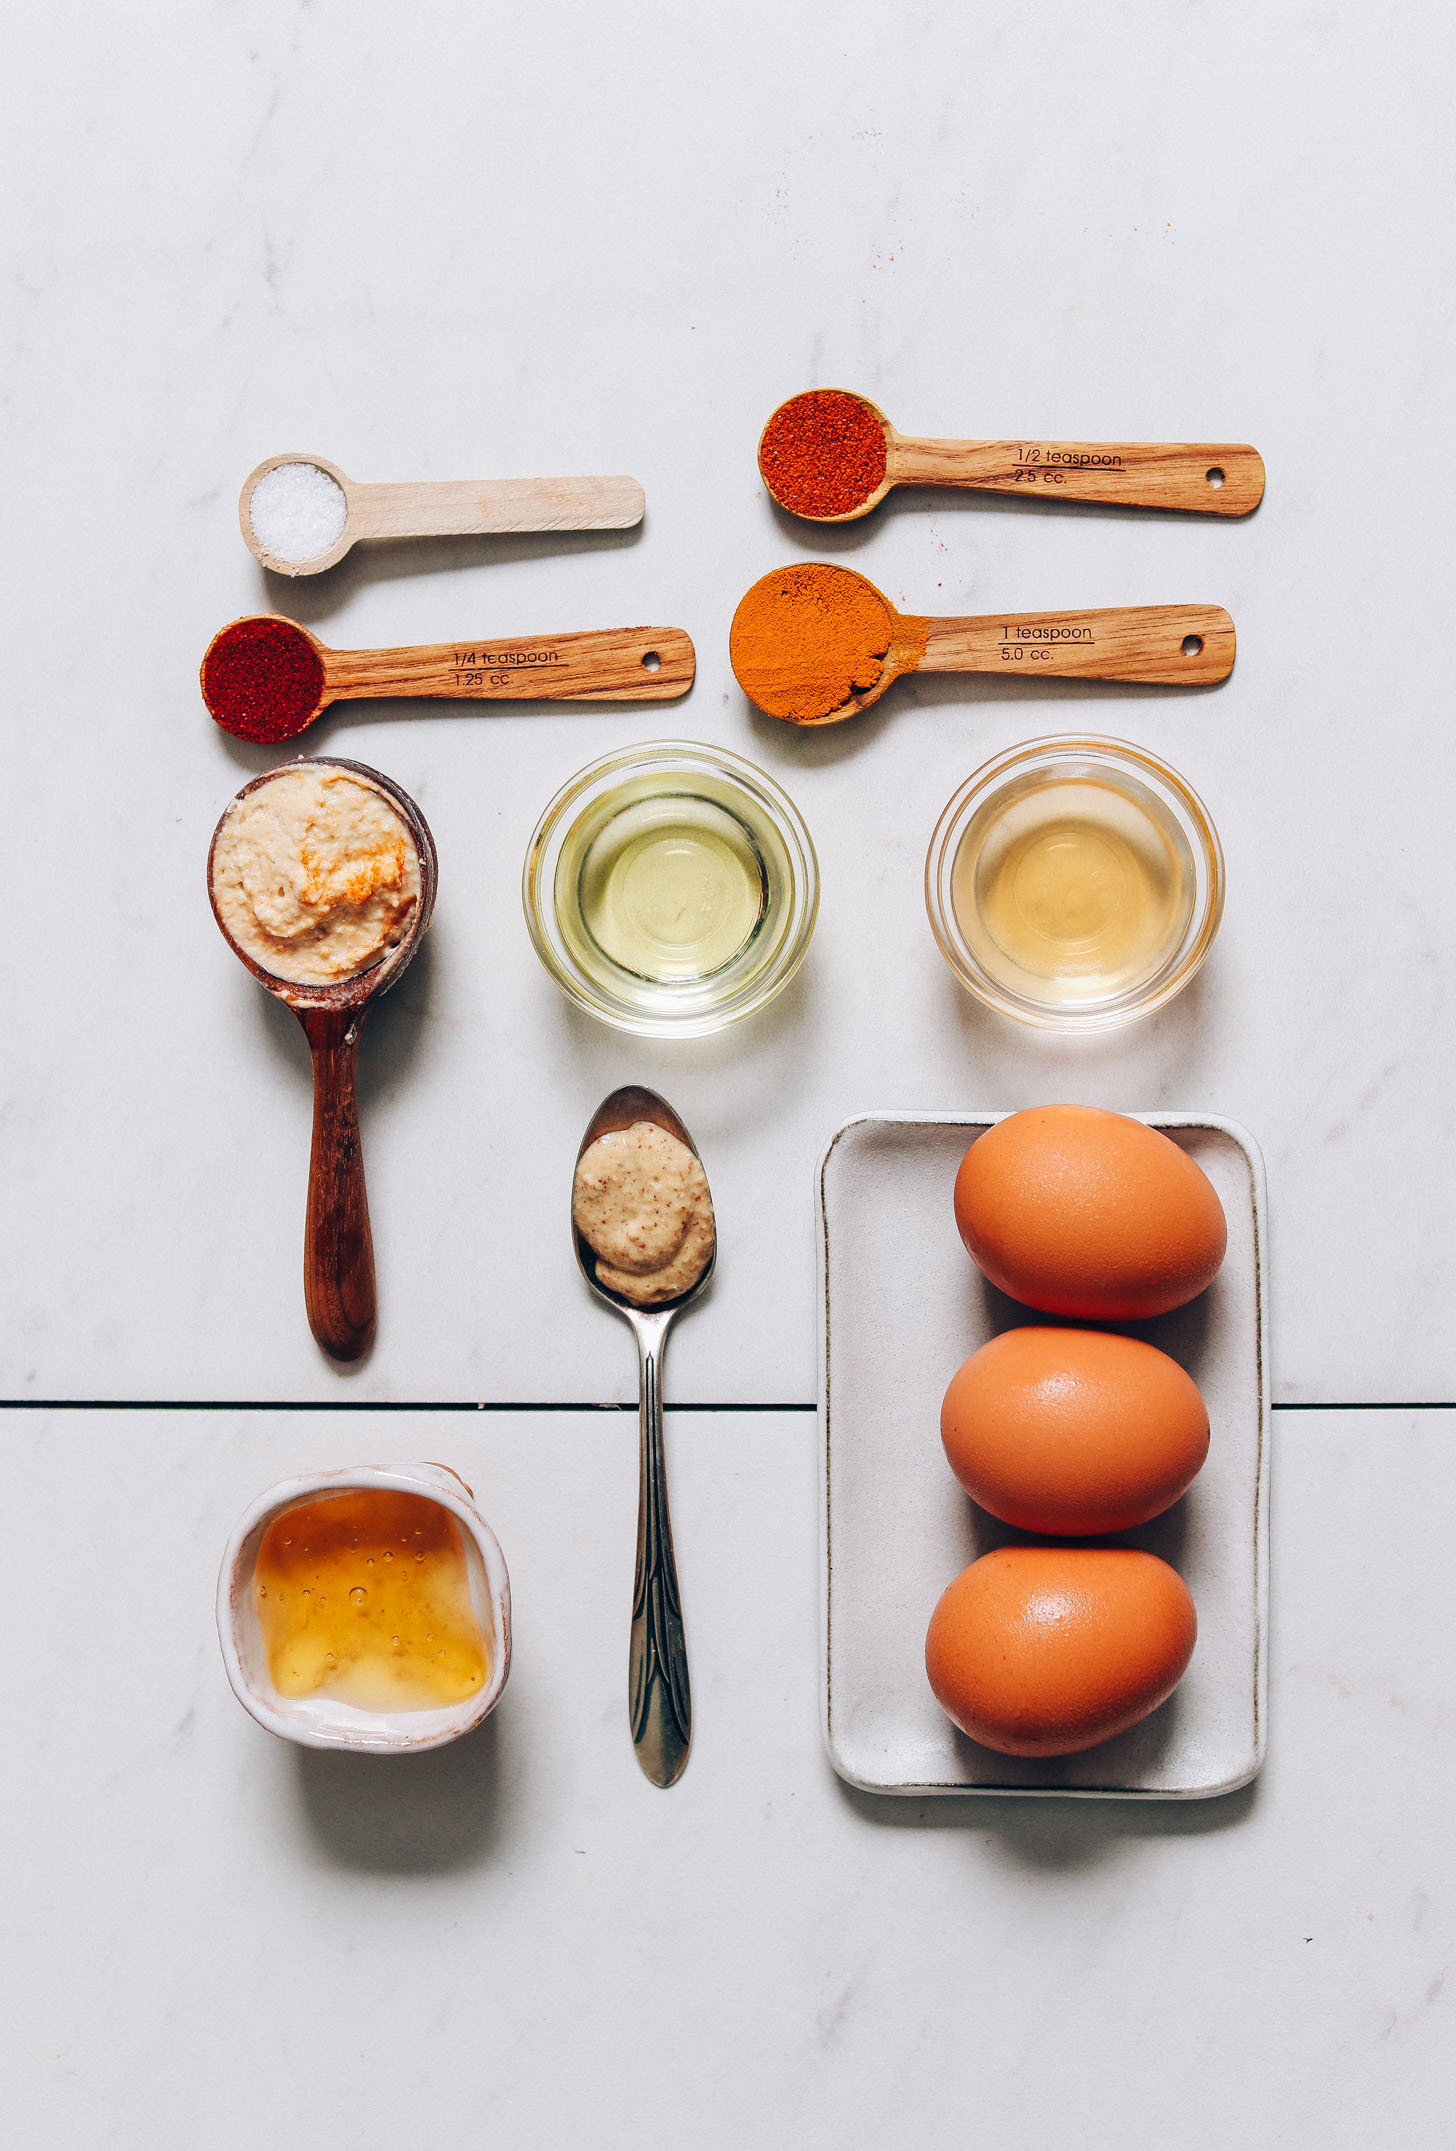 Hard boiled eggs, hummus, raw honey, and other ingredients for making our Mayo-Free Deviled Eggs recipe